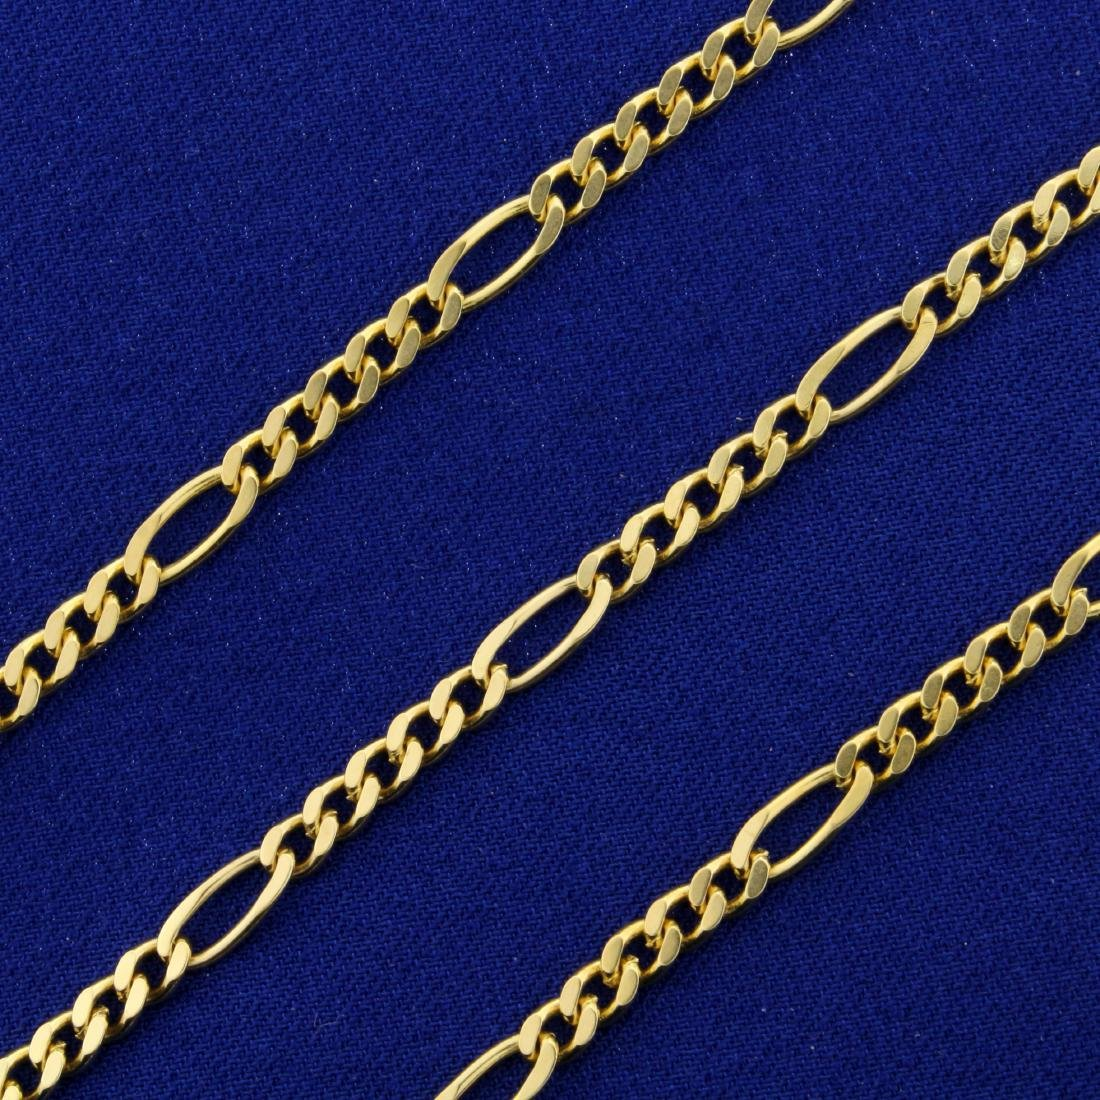 18 Inch Figaro Neck Chain in 14K Yellow Gold - 2